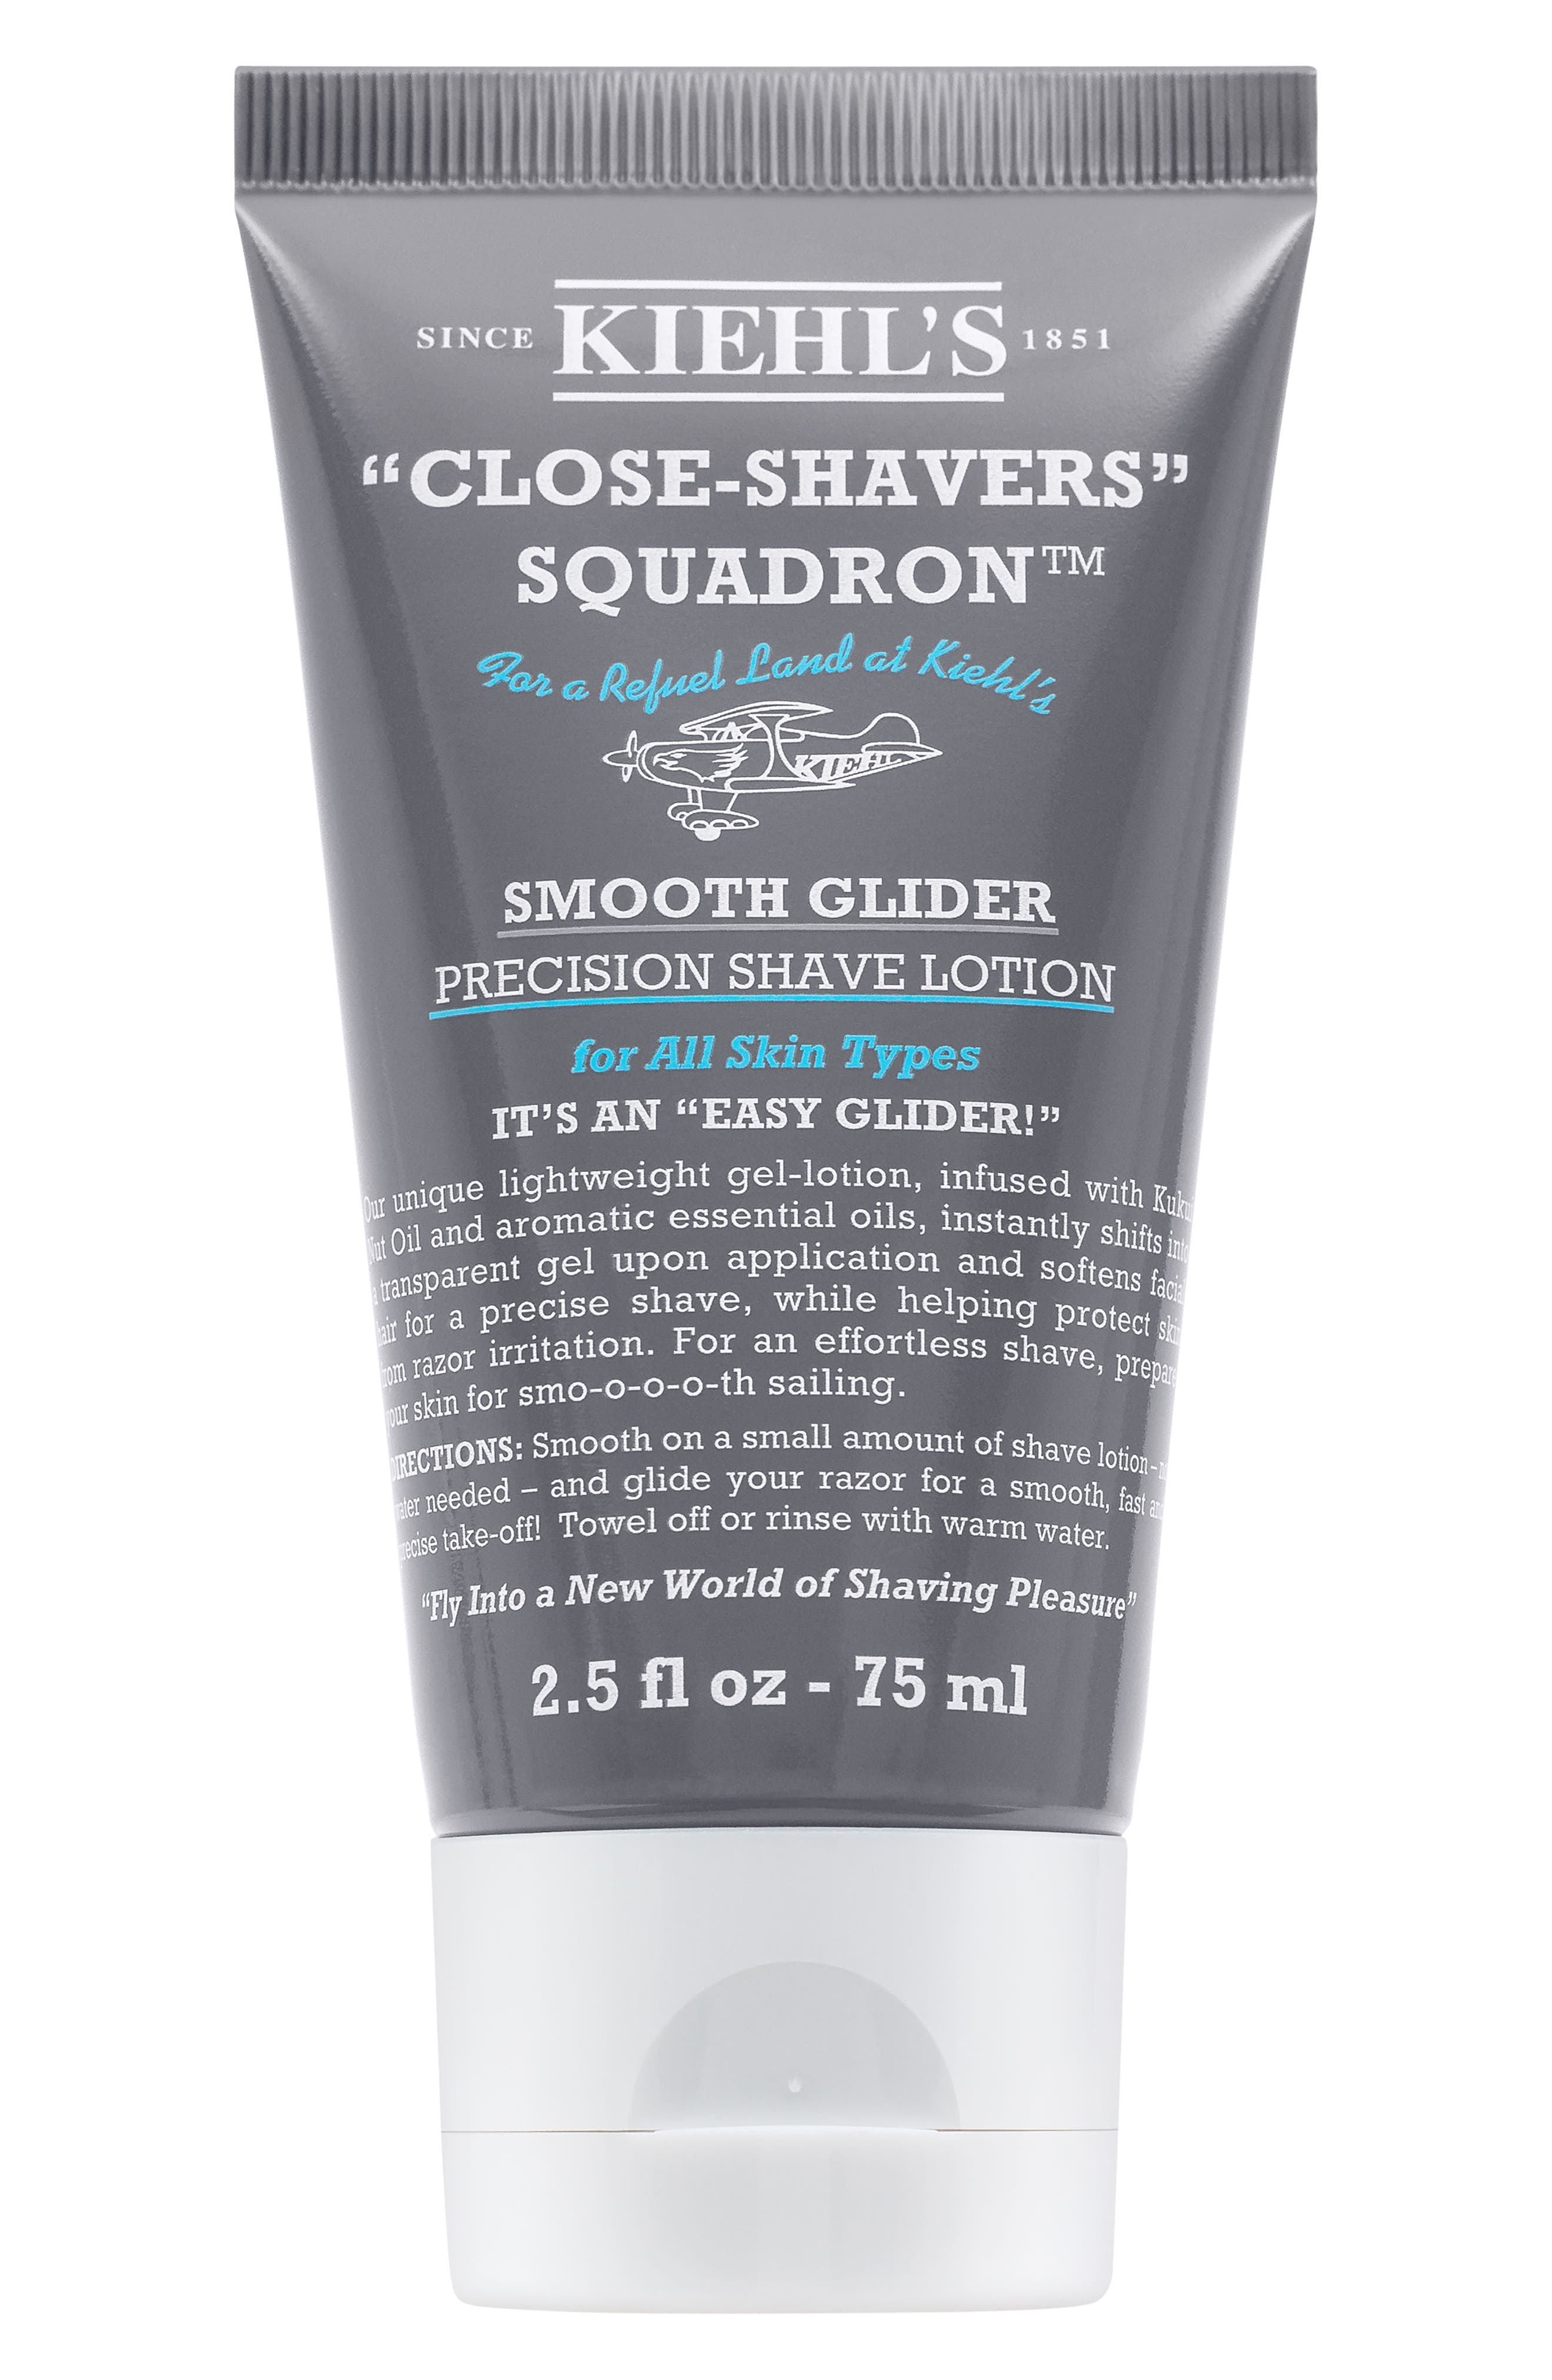 Alternate Image 1 Selected - Kiehl's Since 1851 'Smooth Glider' Shave Lotion